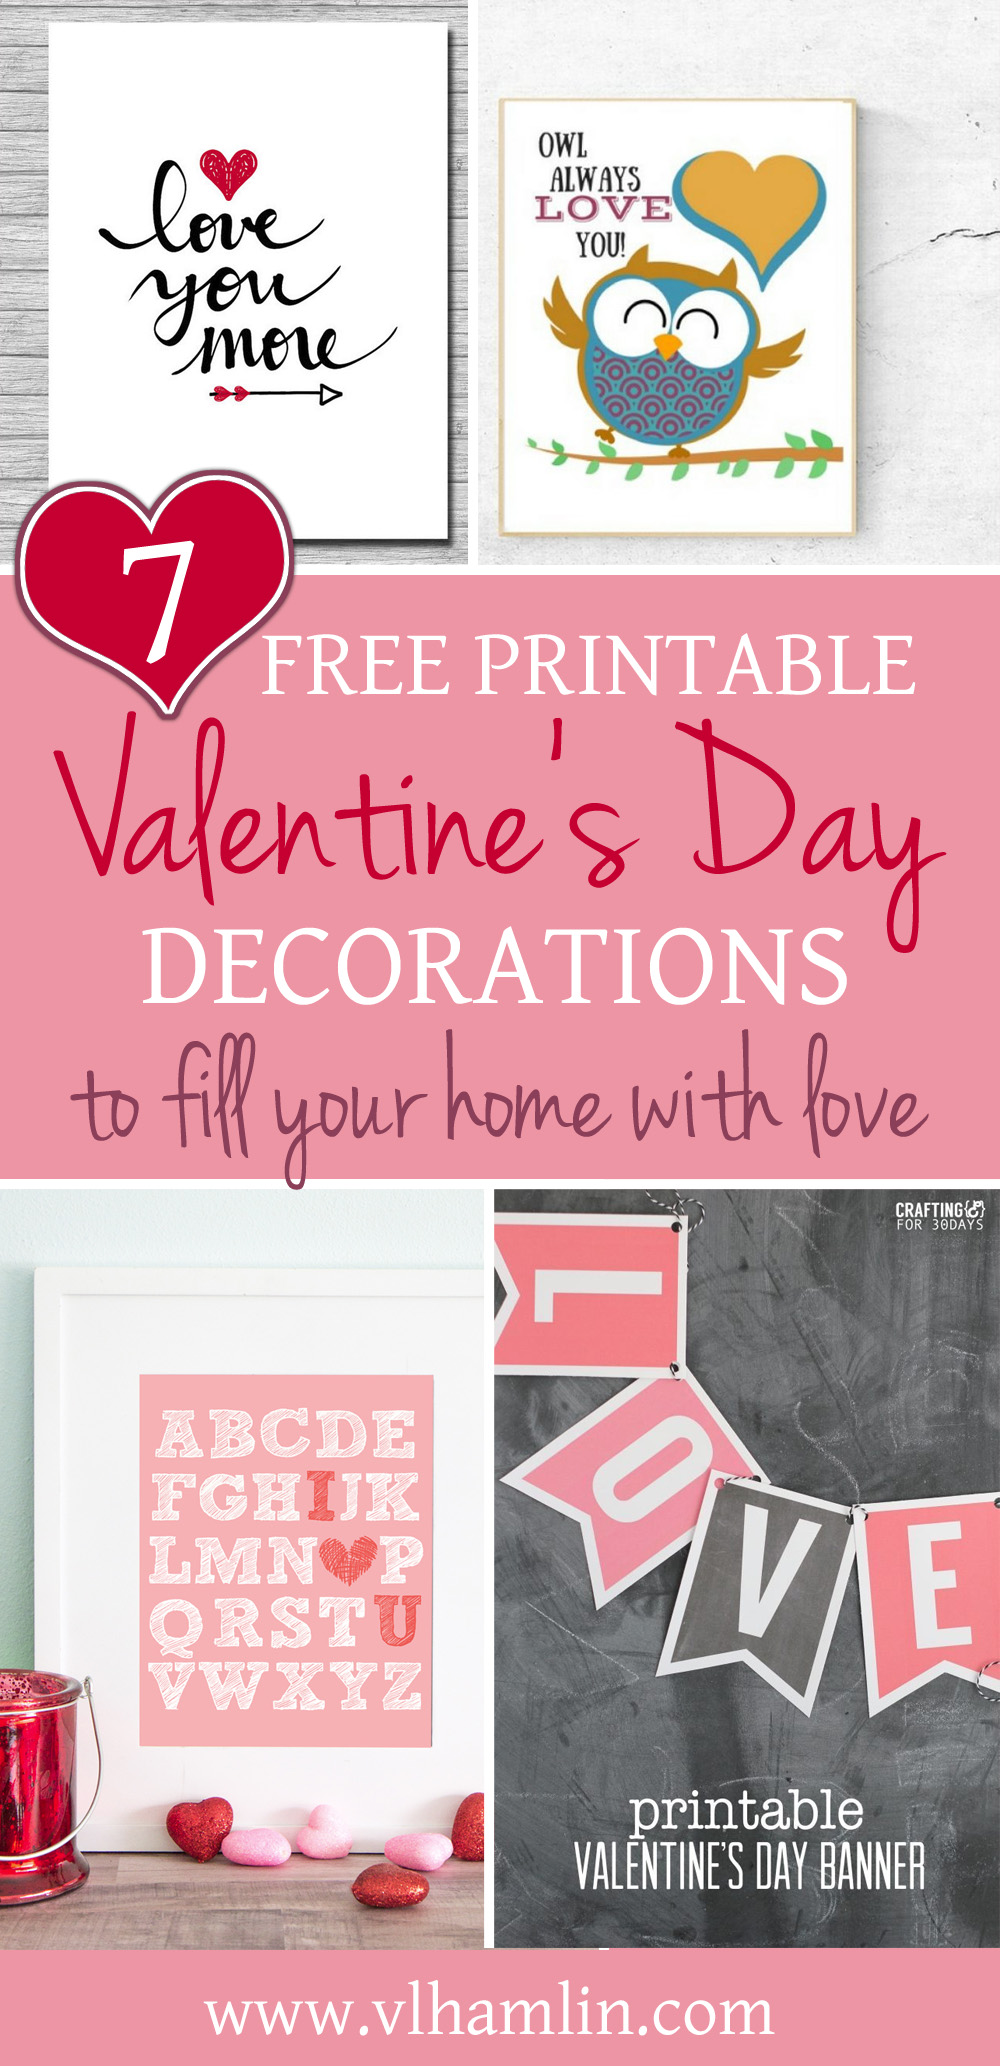 7 Free Printable Valentines Day Decorations